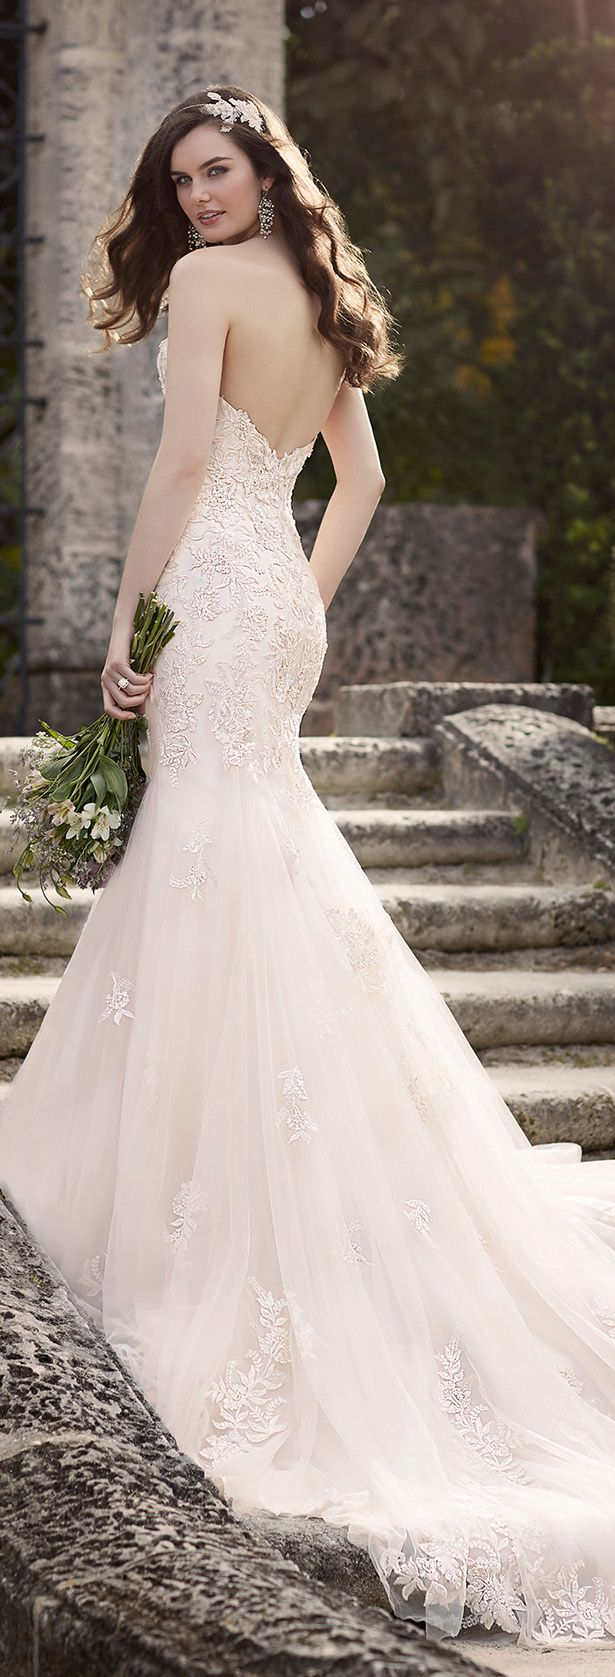 46 best mermaid wedding dress images on pinterest mermaid 46 best mermaid wedding dress images on pinterest mermaid wedding dresses wedding dressses and mermaids ombrellifo Image collections